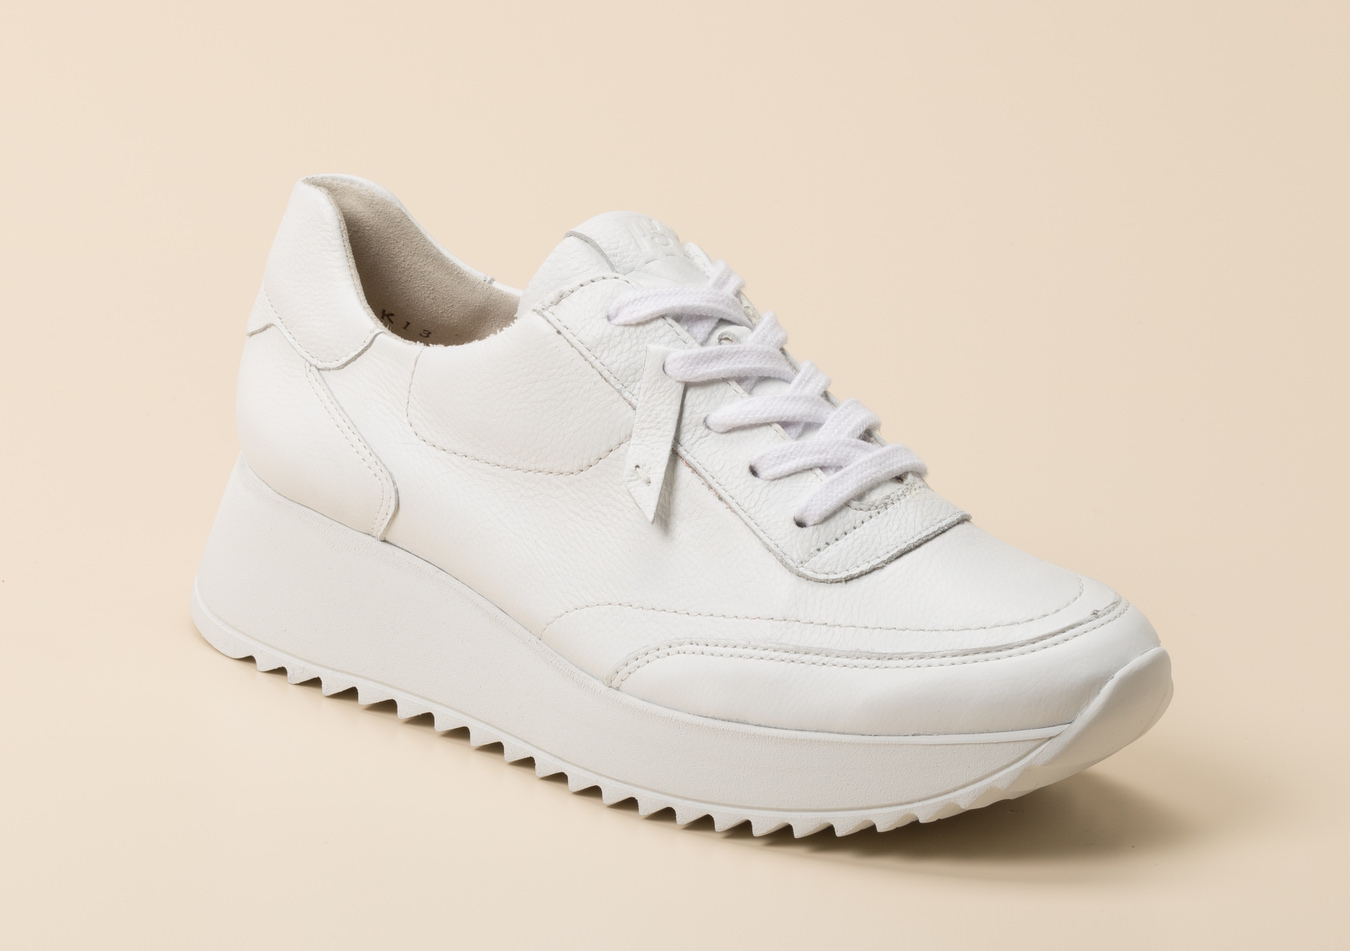 Paul Green Damen Sneaker in weiß kaufen | Zumnorde Online Shop